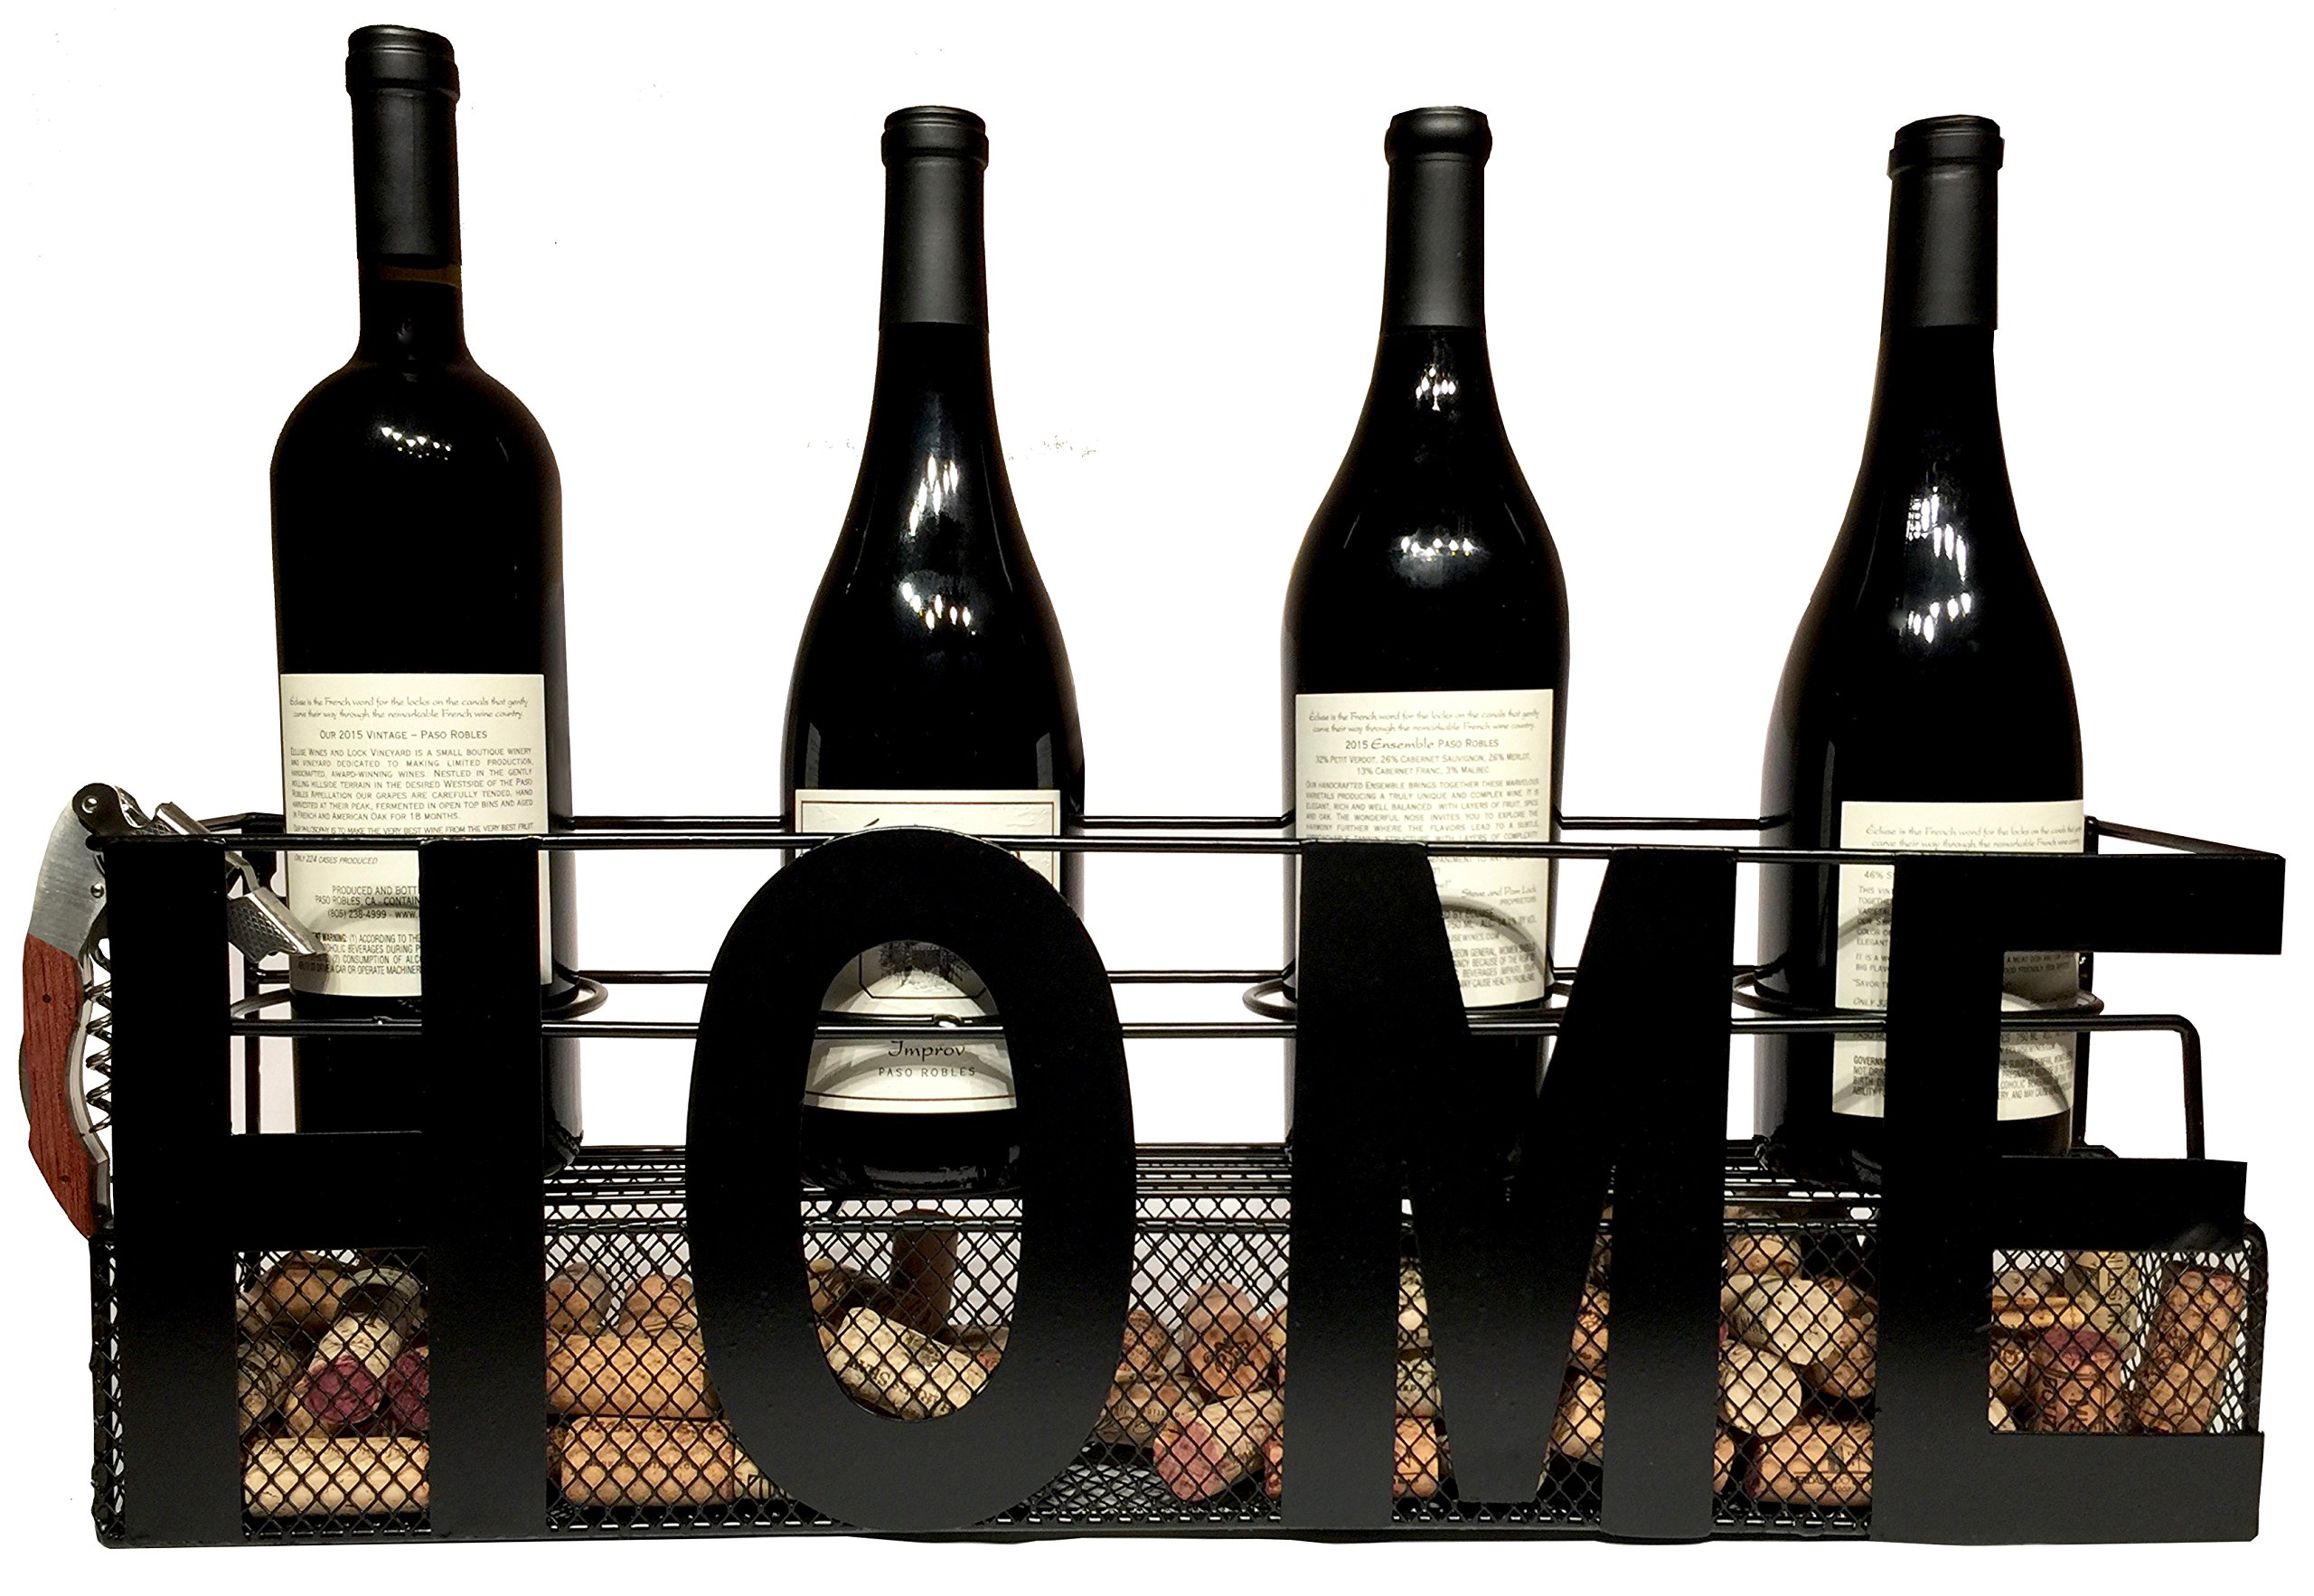 Home Wine Rack Wall Mounted Hanging or Counter Table Top with Wine Cork Holder Holds 4 Bottles and 4 Wine Glasses - Comes with Paso Barrel and Bottle Gift Box! (Home Wall or Counter No Glass Holders)